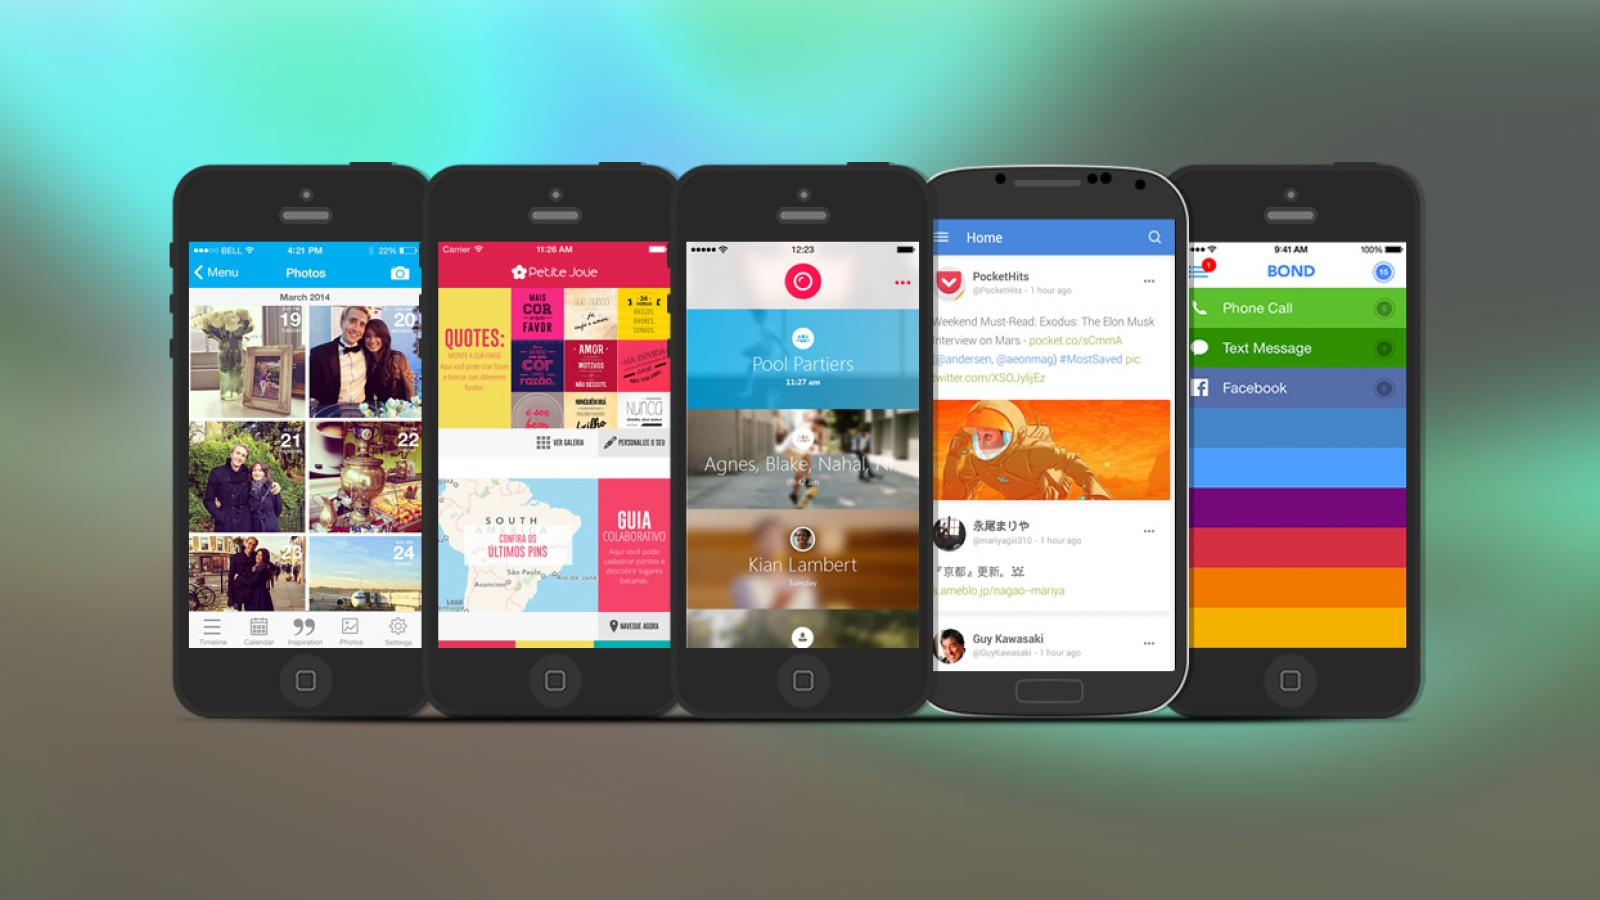 Weekly Apps: Qik, Petite Jolie, Bond and more